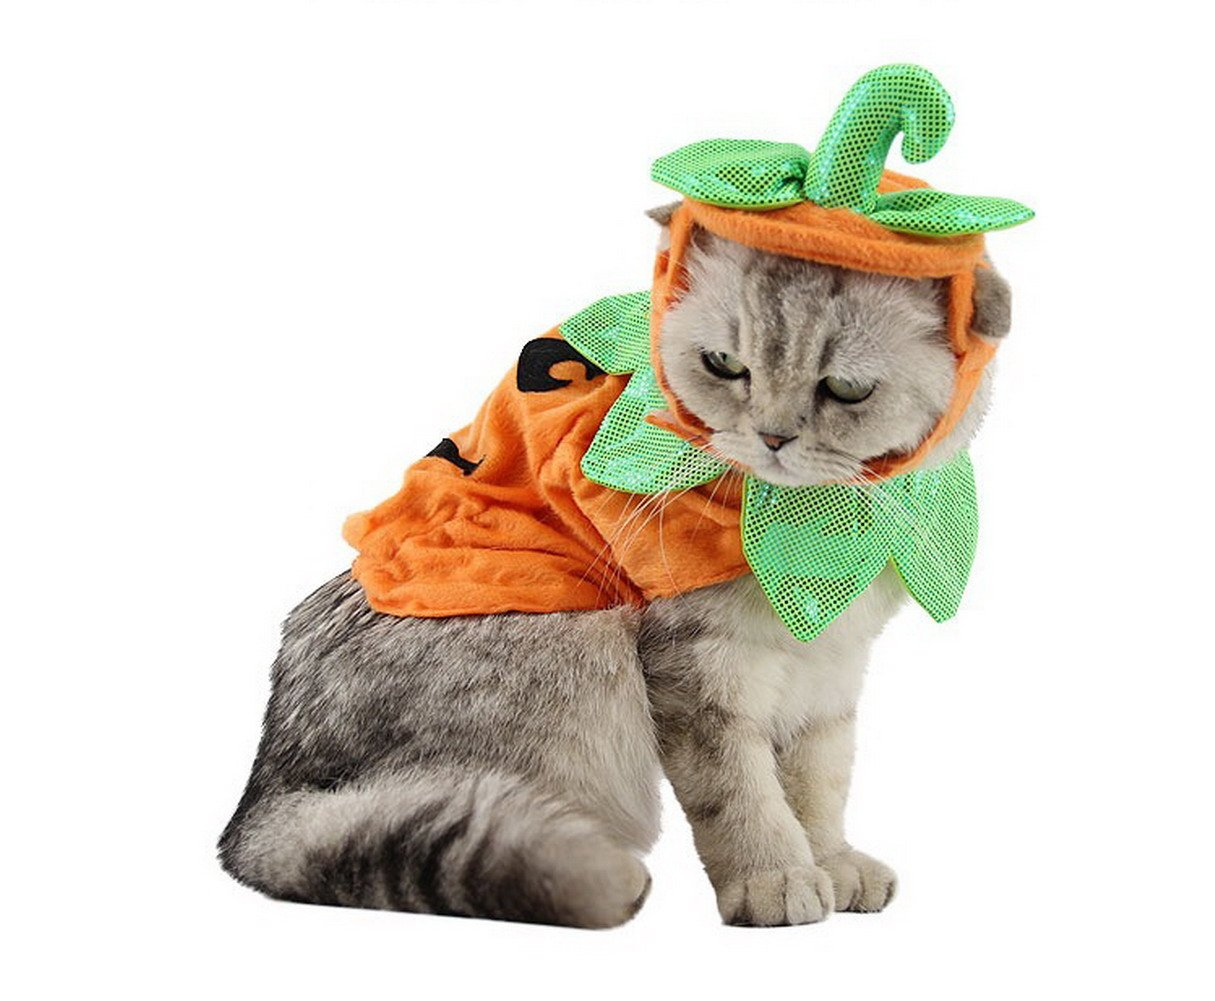 PET SHOW Cats Dogs Pumpkin Warm Adjustable Costumes Set with Hat for Pet Halloween Party Cosplay Accessories Outfits Apparel Headwear Pack of 1